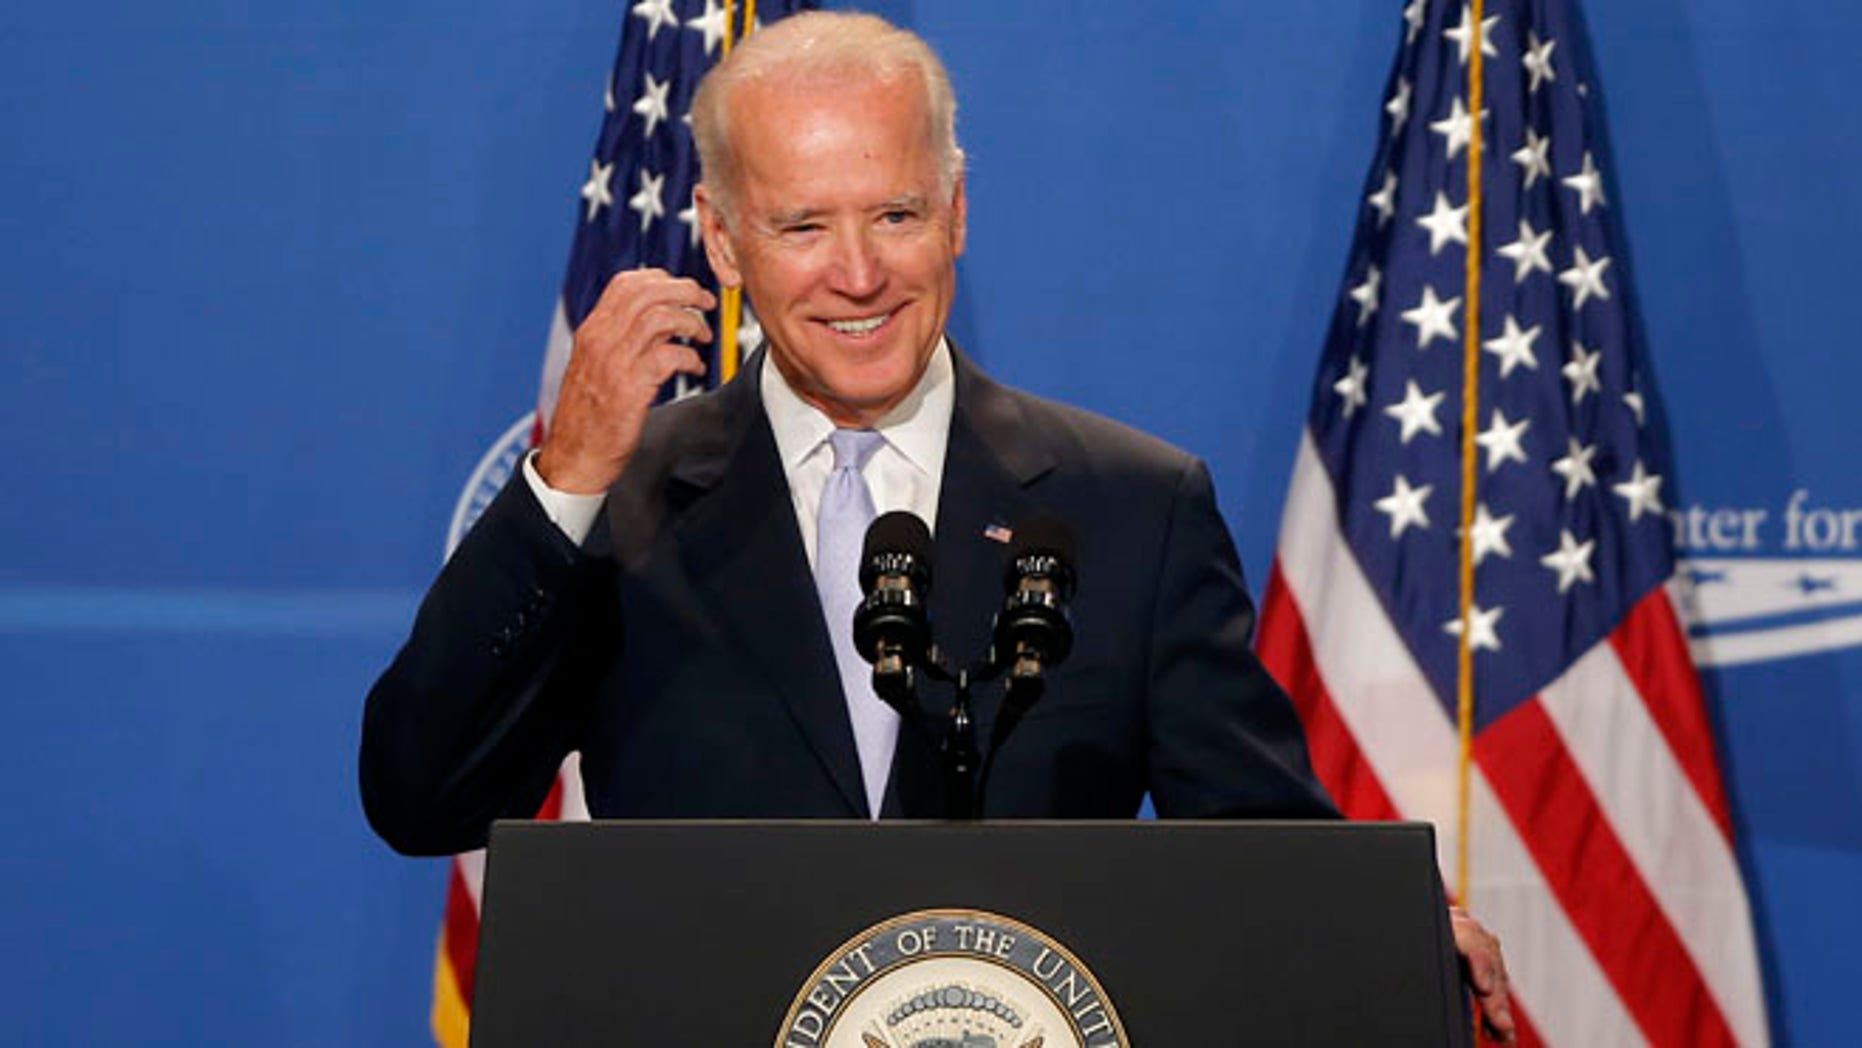 Vice President Joe Biden speaks at The White House Summit on Working Families, Monday, June 23, 2014, in Washington.